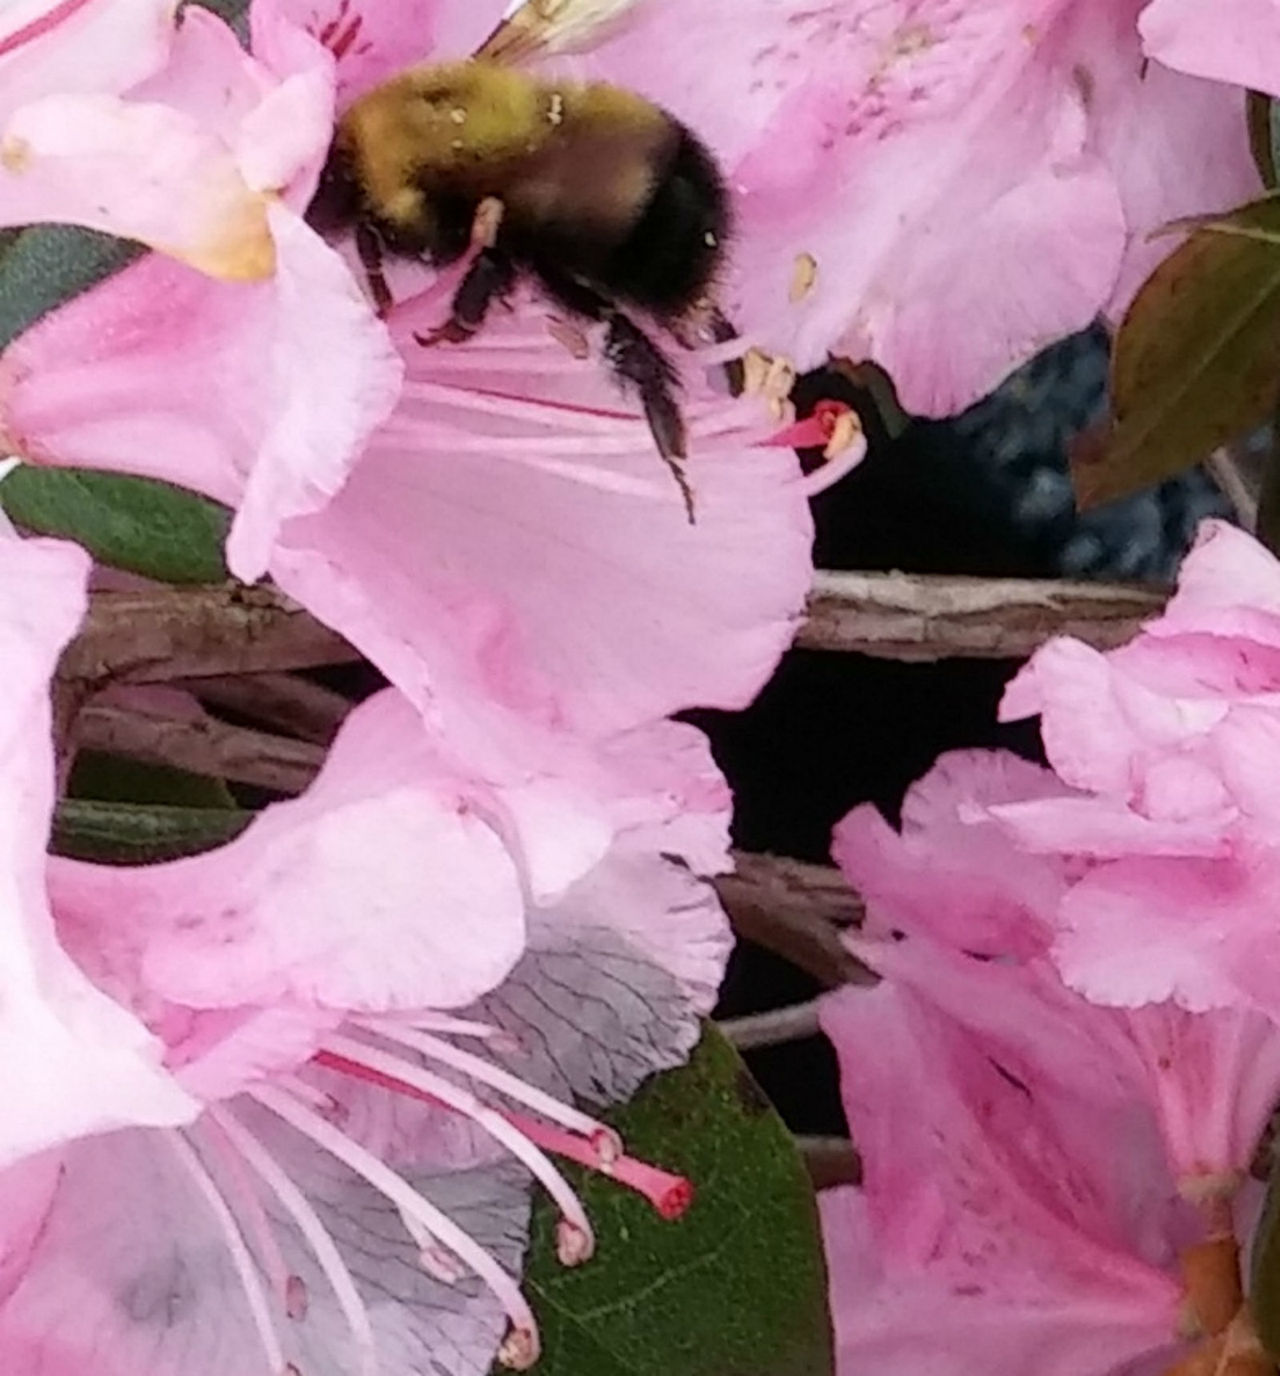 Beauty In Nature Bees Gathering Pollen Blooming Bumble Bees Close-up Day Flower Flower Head Fragility Freshness Growth Nature No People Outdoors Petal Pink Color Plant Violet Flowers